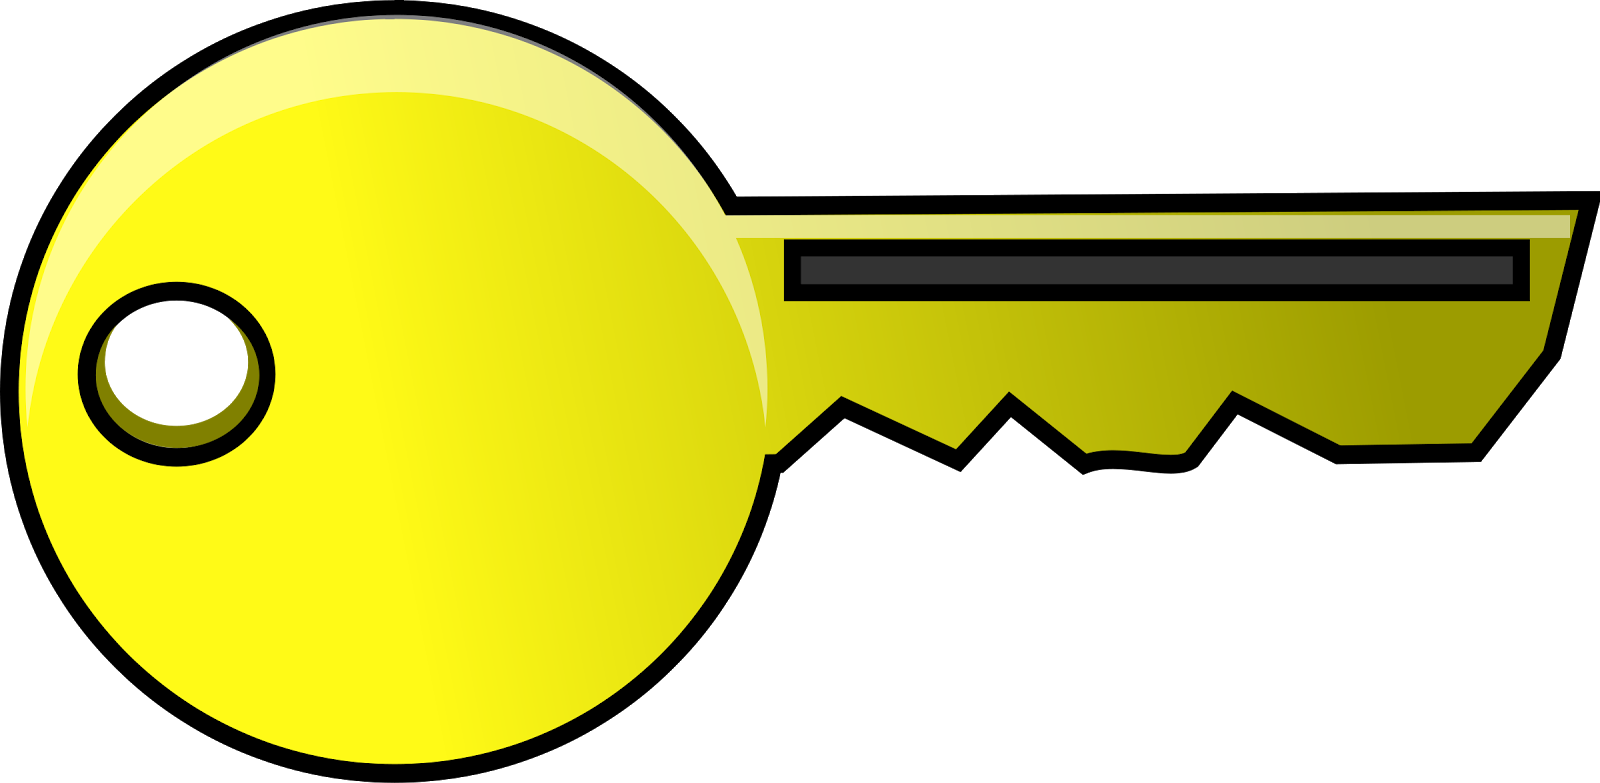 Key clipart yellow. Computer icons clip art